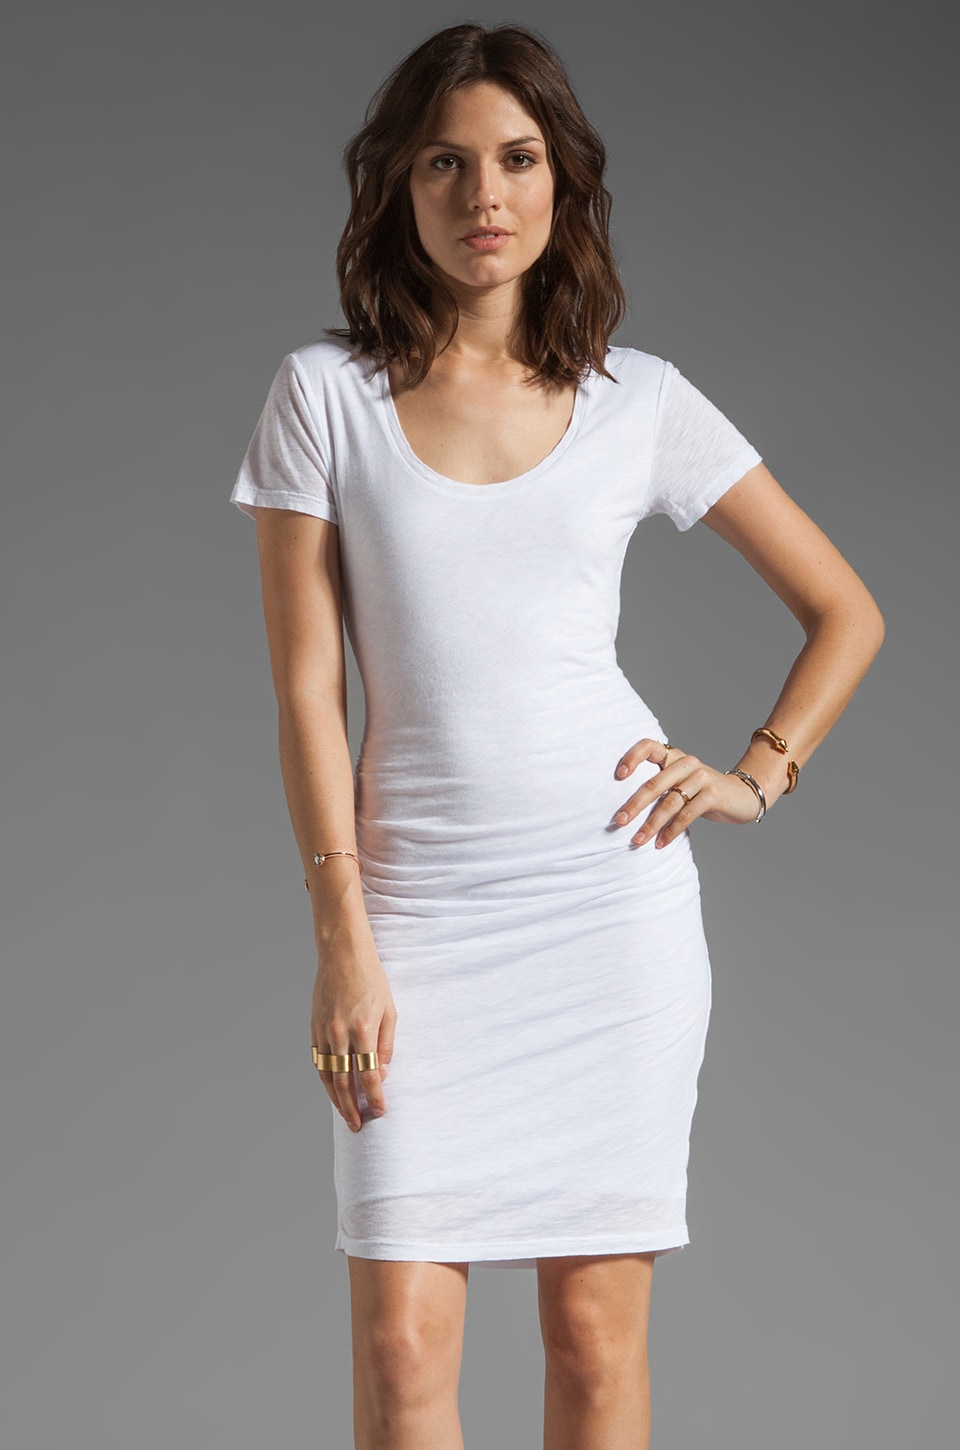 Velvet by Graham & Spencer Dina Luxe Slub Dress in White